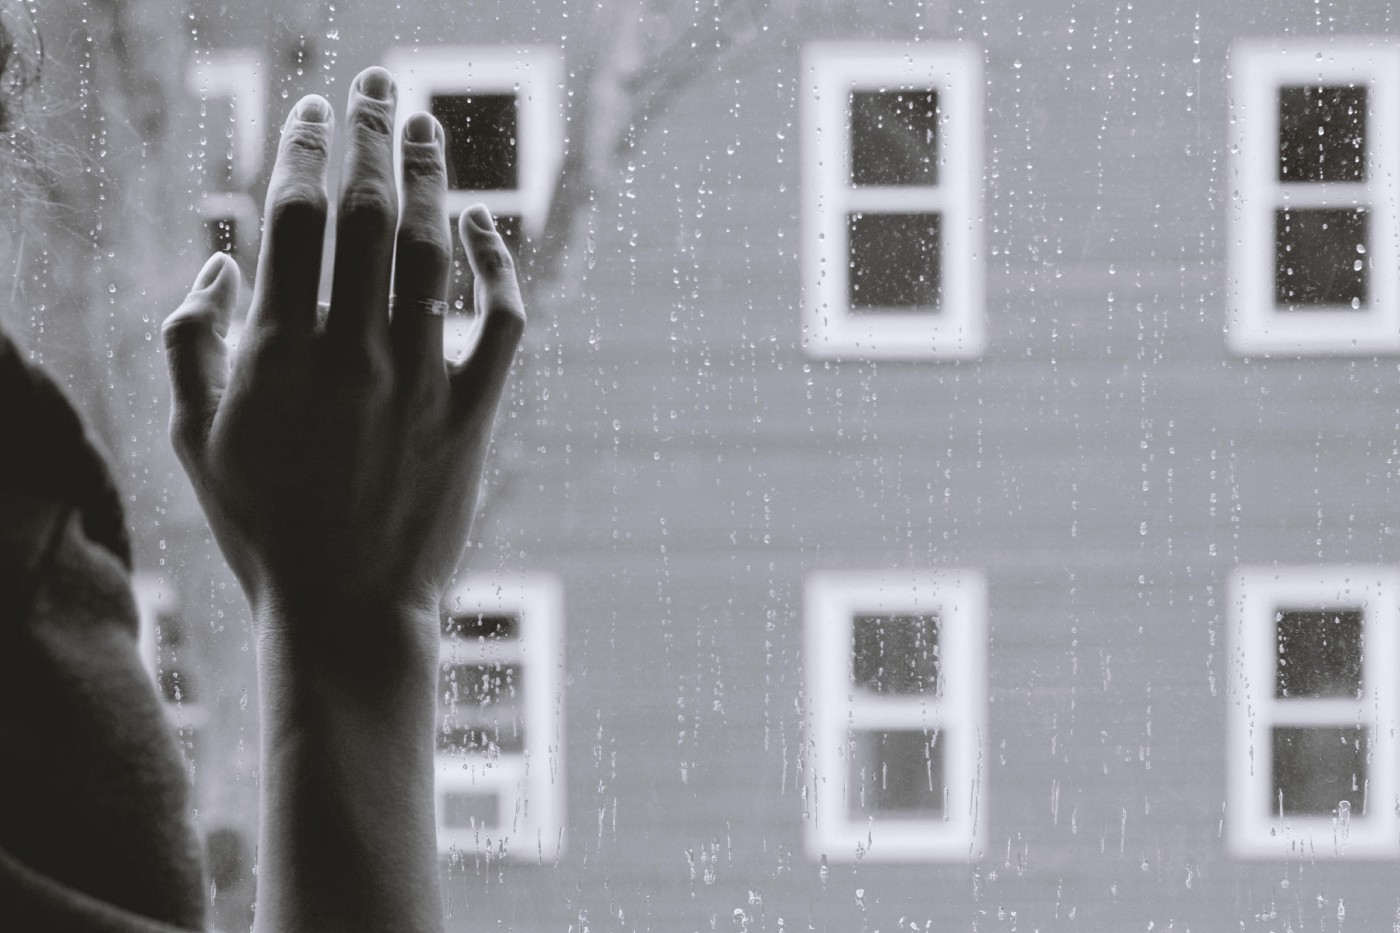 A person holds their hand against a rainy window looking out at another building.